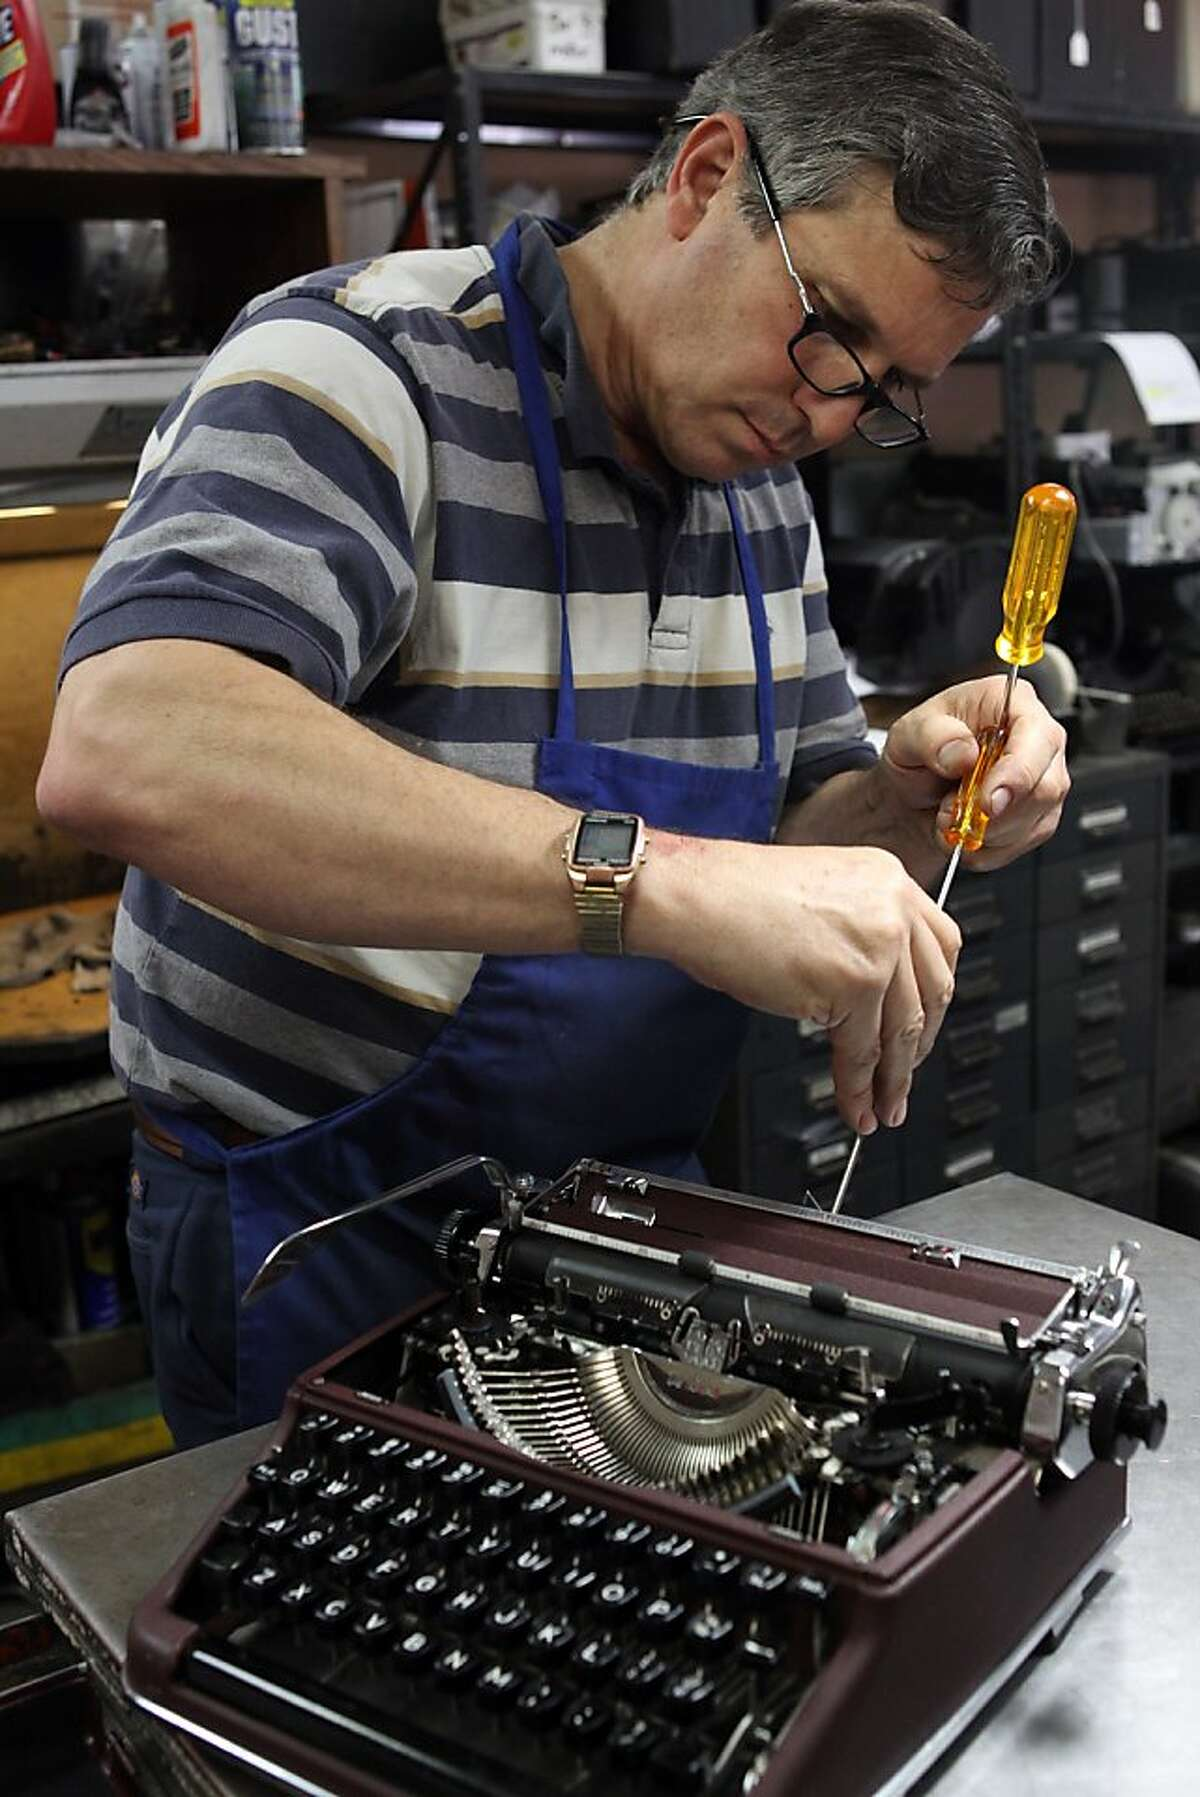 John Sansone, owner of Los Altos Business Machines, repairs a 1953 Olympia portable typewriter in his downtown Los Altos, CA shop on Thursday, May 5, 2011.